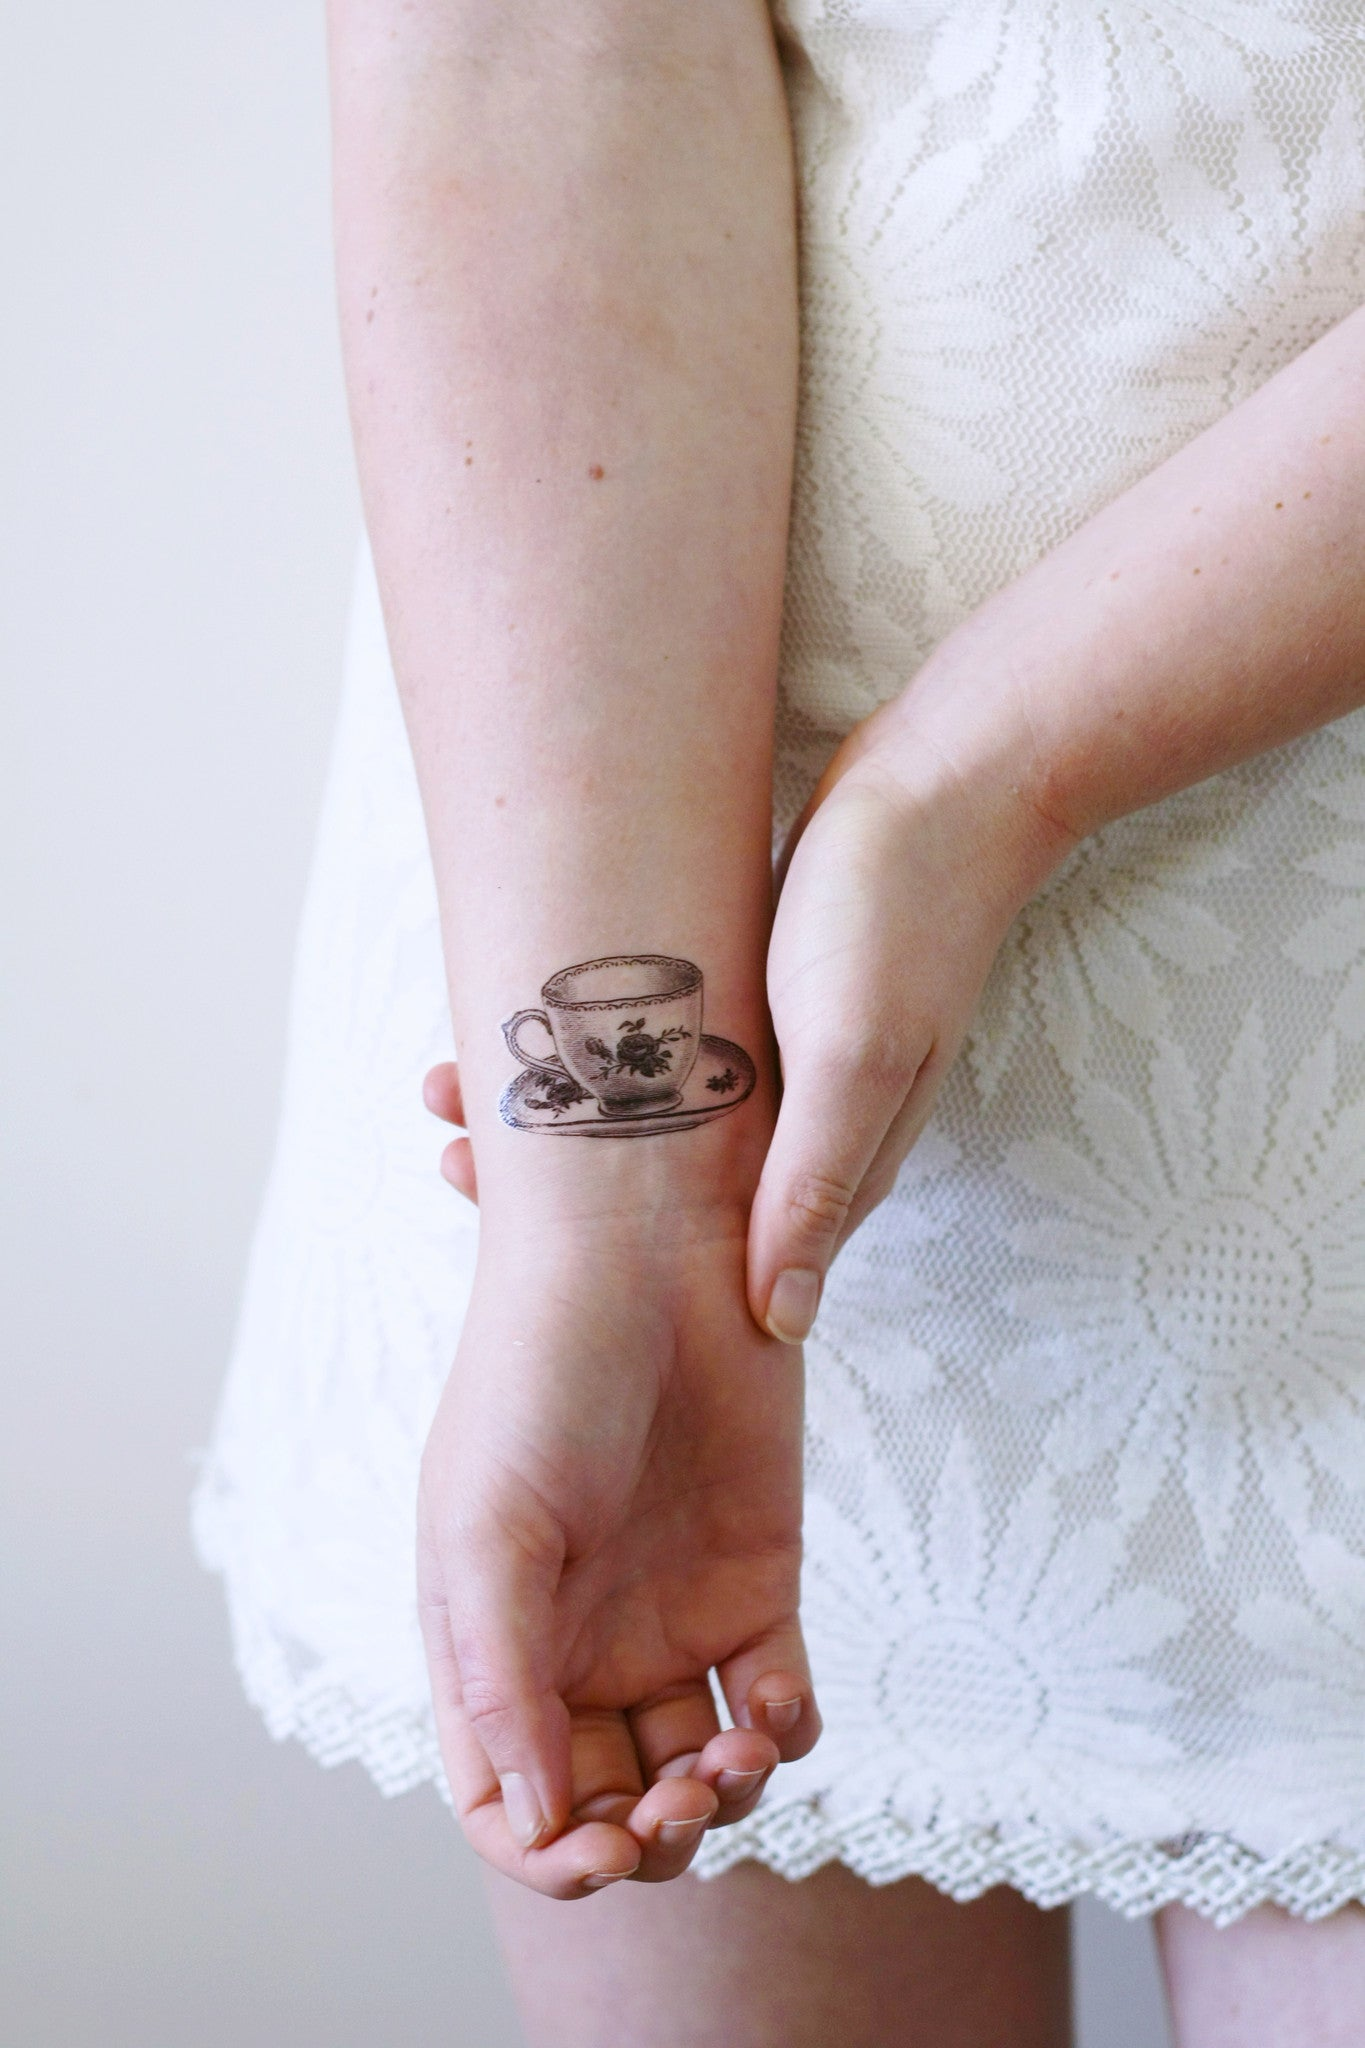 Small teacup temporary tattoo – Temporary Tattoos by Tattoorary